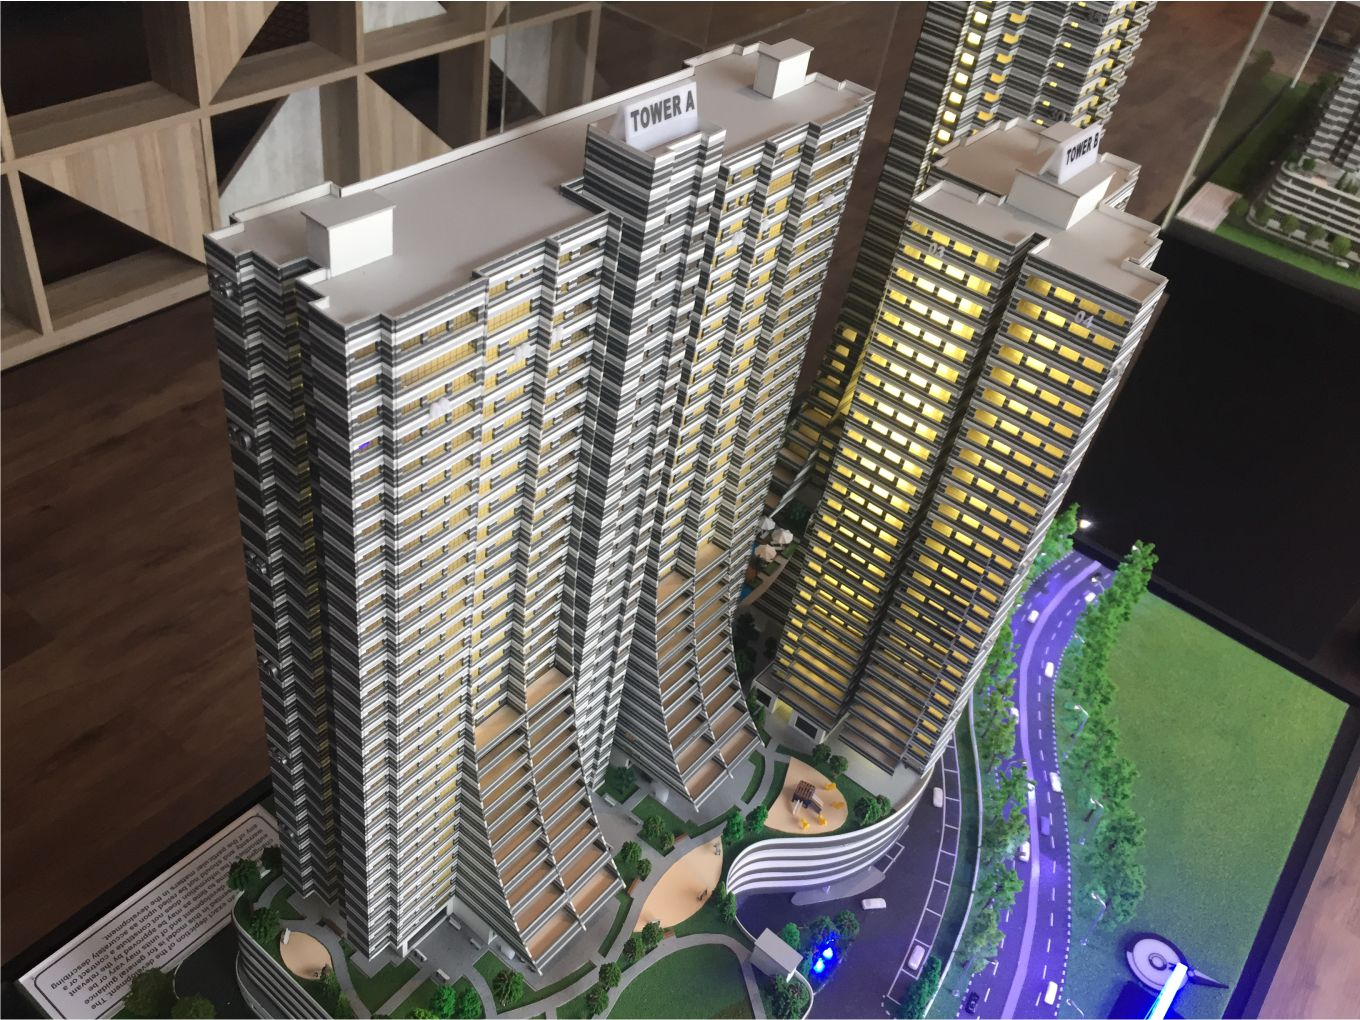 Amazing Models :: Project Gallery | Architectural Model Maker JB